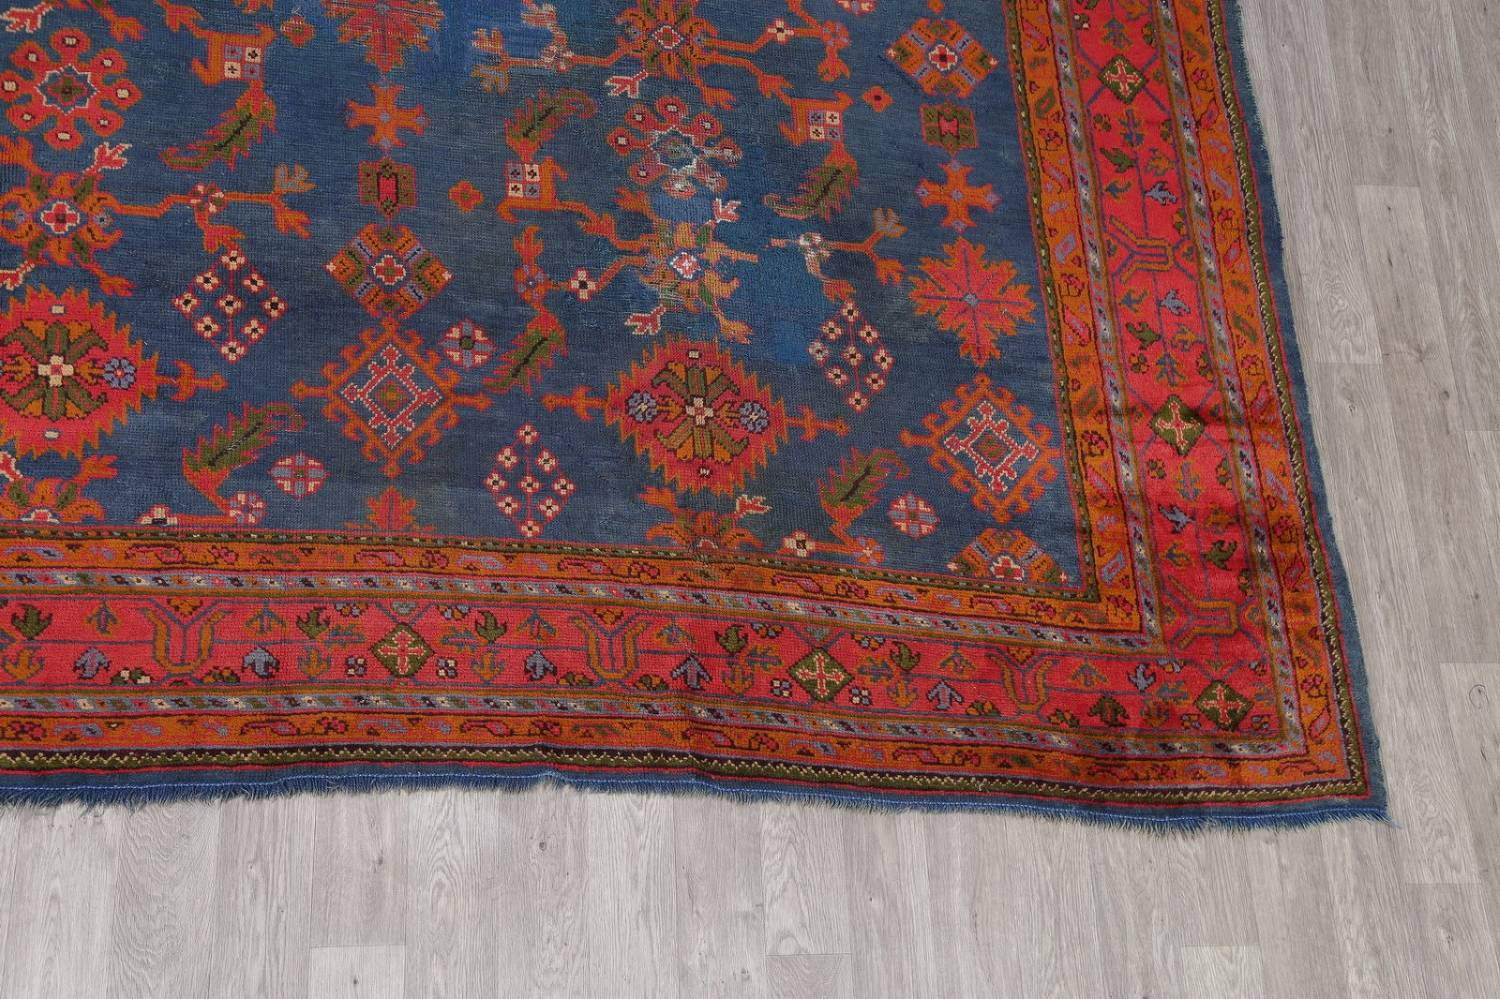 Antique Vegetable Dye Oushak Turkish Hand-Knotted Area Rug Wool 11x16 image 6